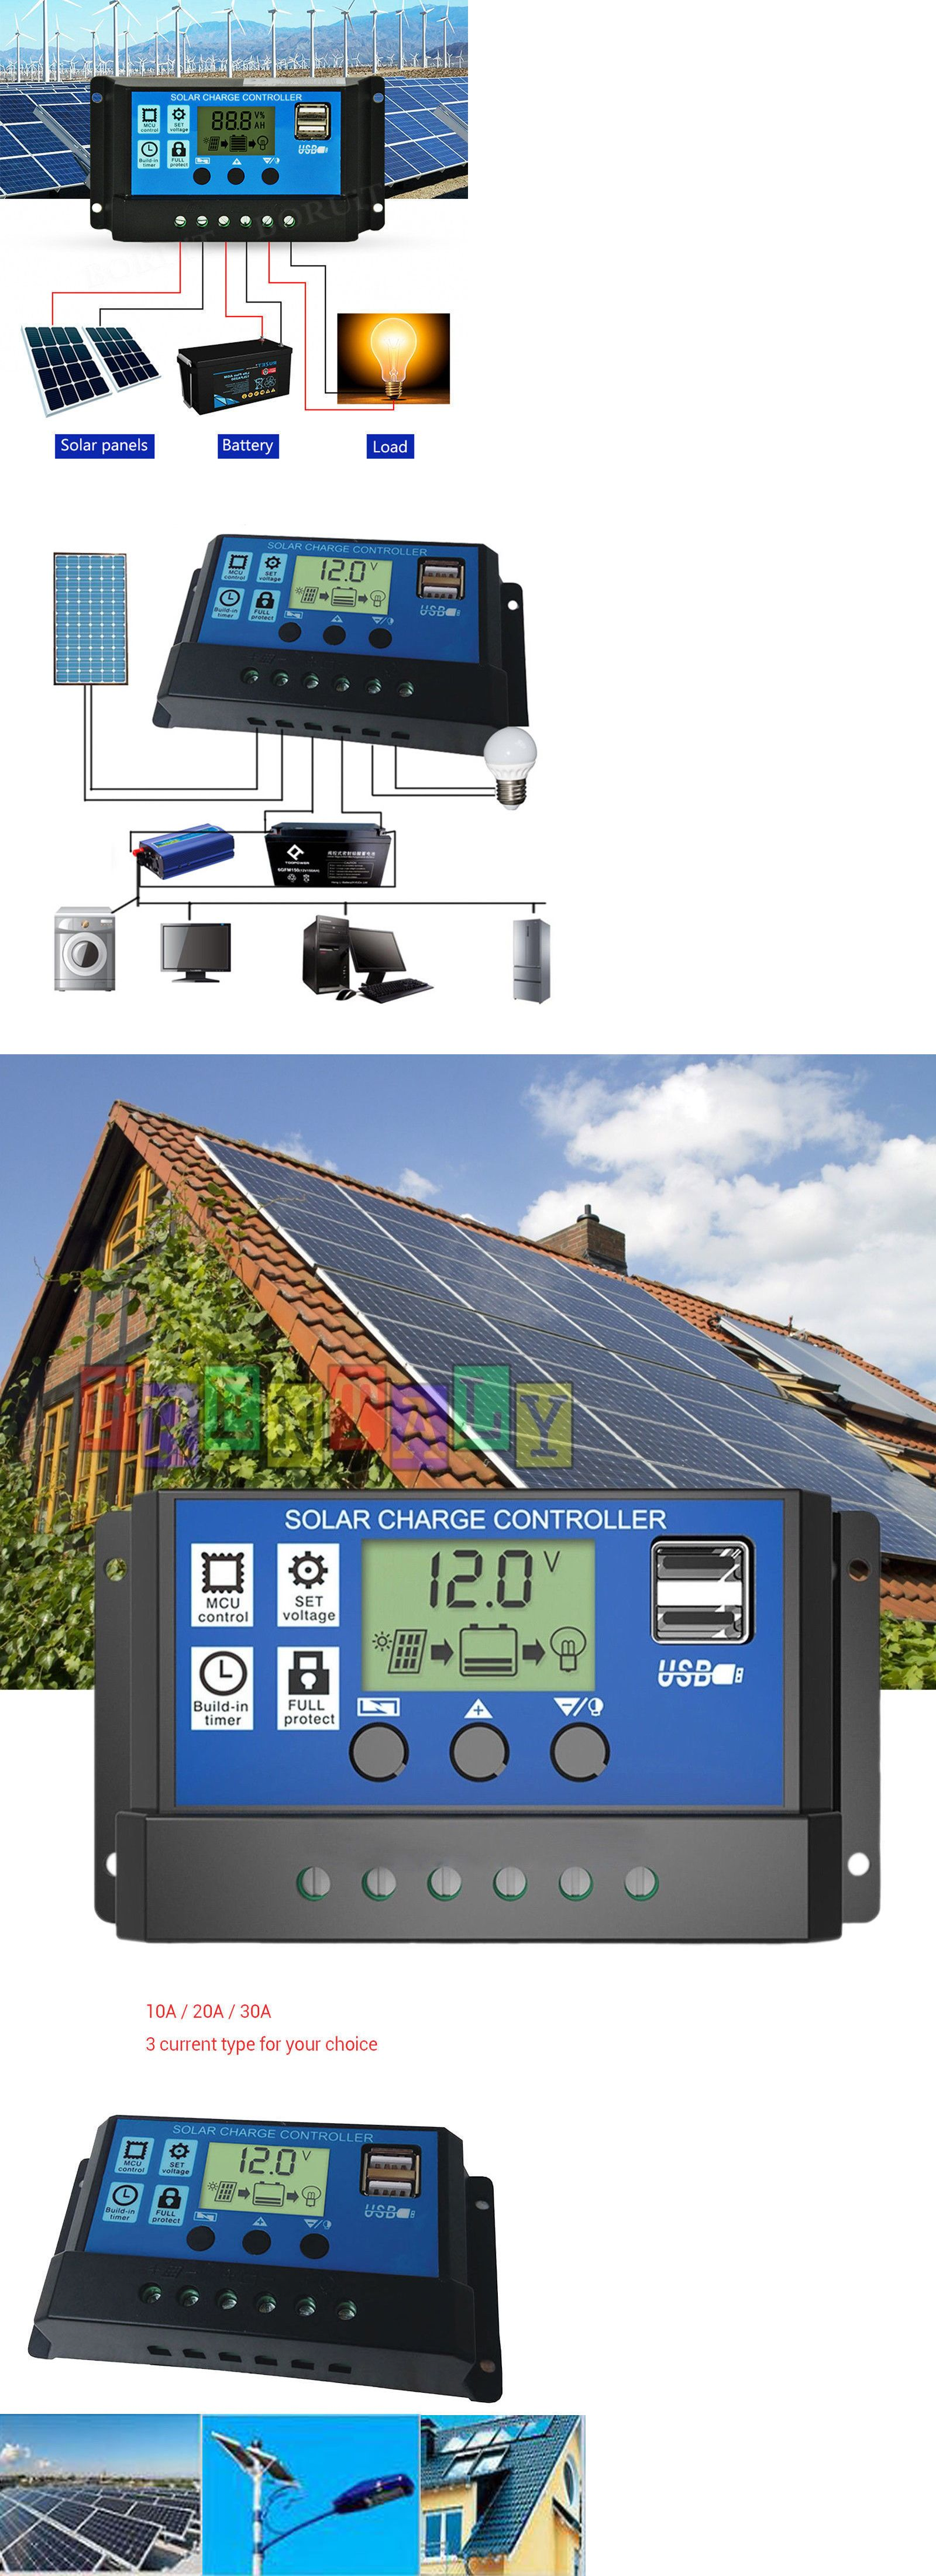 Alternative And Solar Energy 41979 Pwm Solar Charge Controller 12v 24v Regulator Lcd Display Charger Send From Usa Buy It Now Only Solar Solar Power Lcd